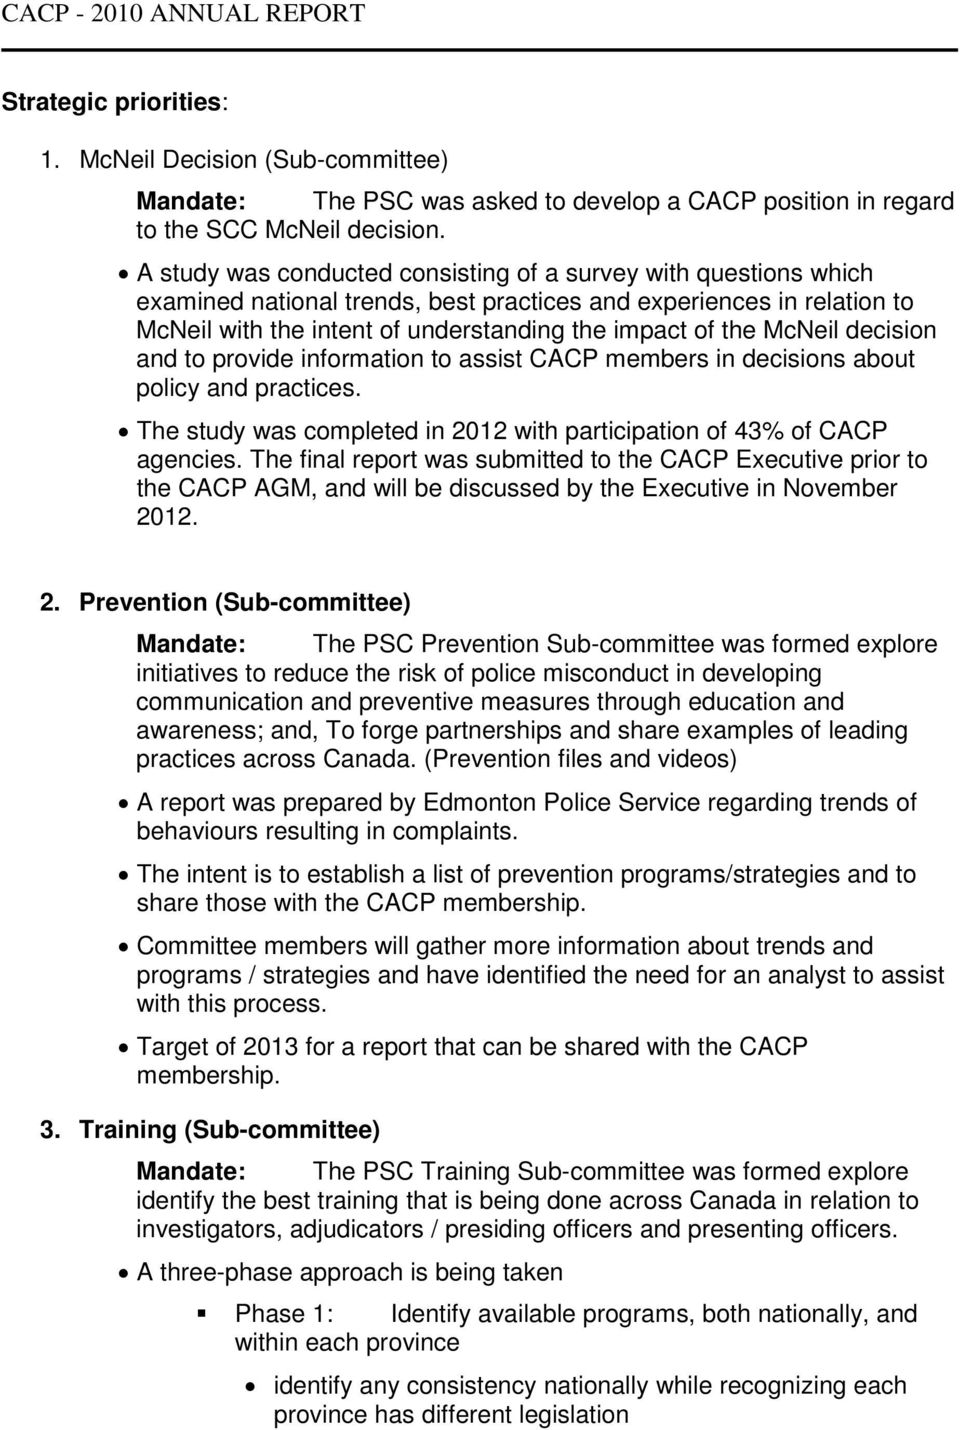 McNeil decision and to provide information to assist CACP members in decisions about policy and practices. The study was completed in 2012 with participation of 43% of CACP agencies.